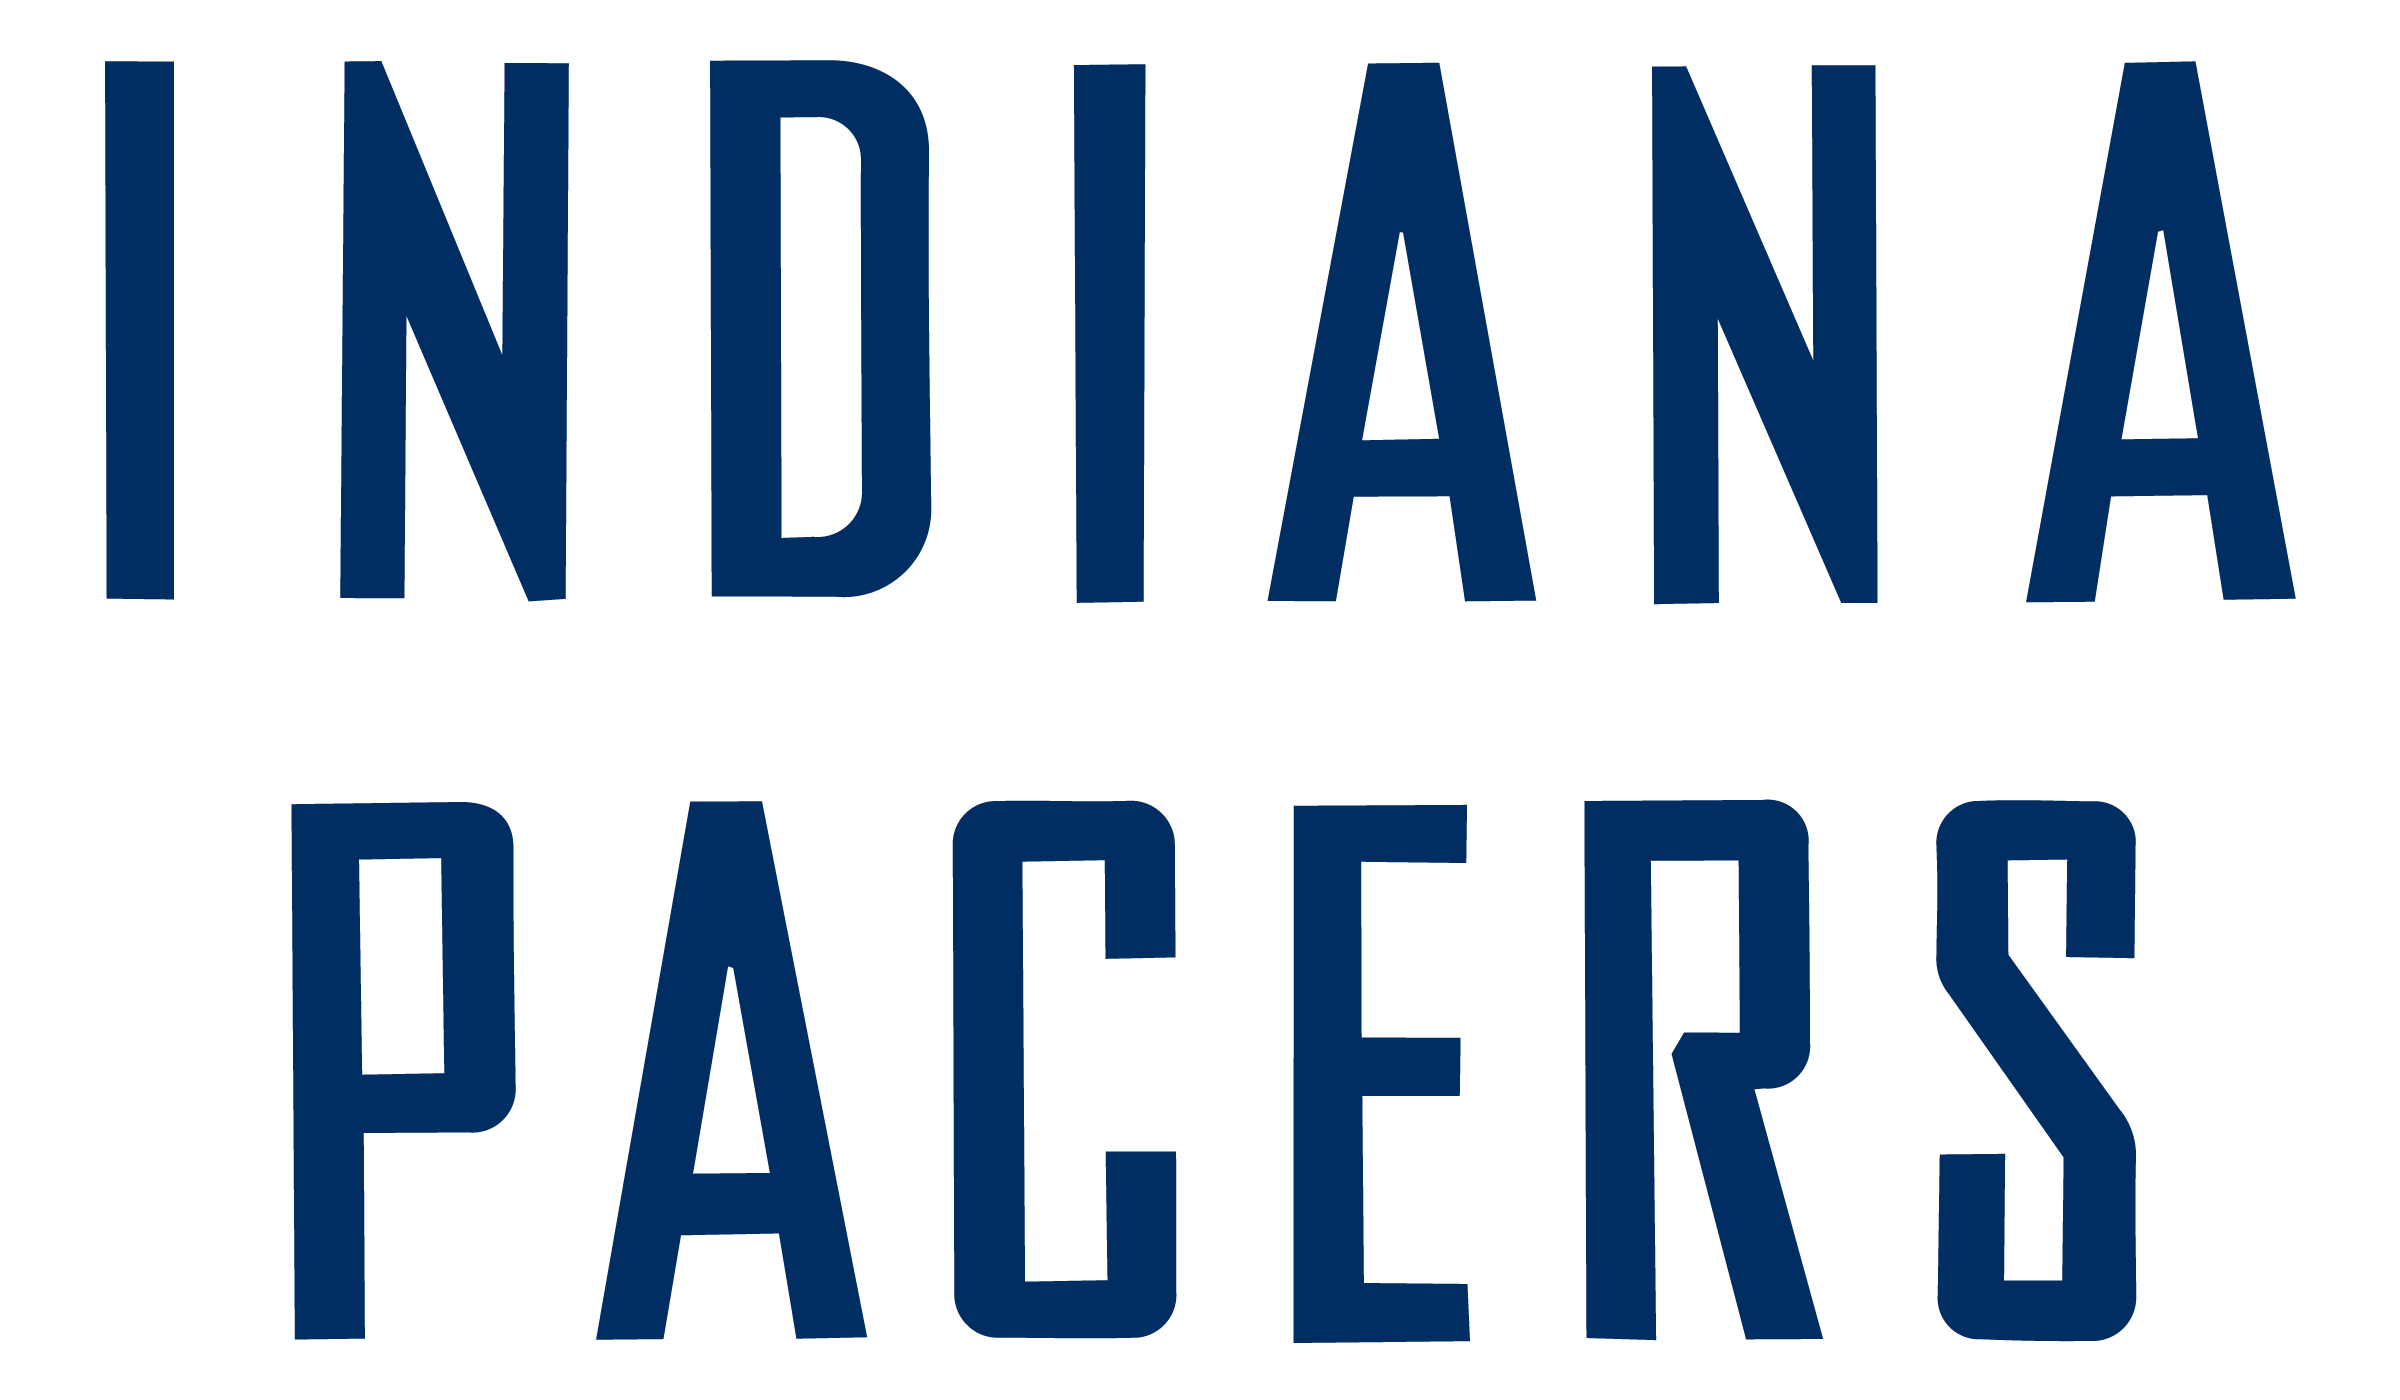 Indiana pacers logo png transparent svg vector freebie supply indiana pacers logo font voltagebd Gallery